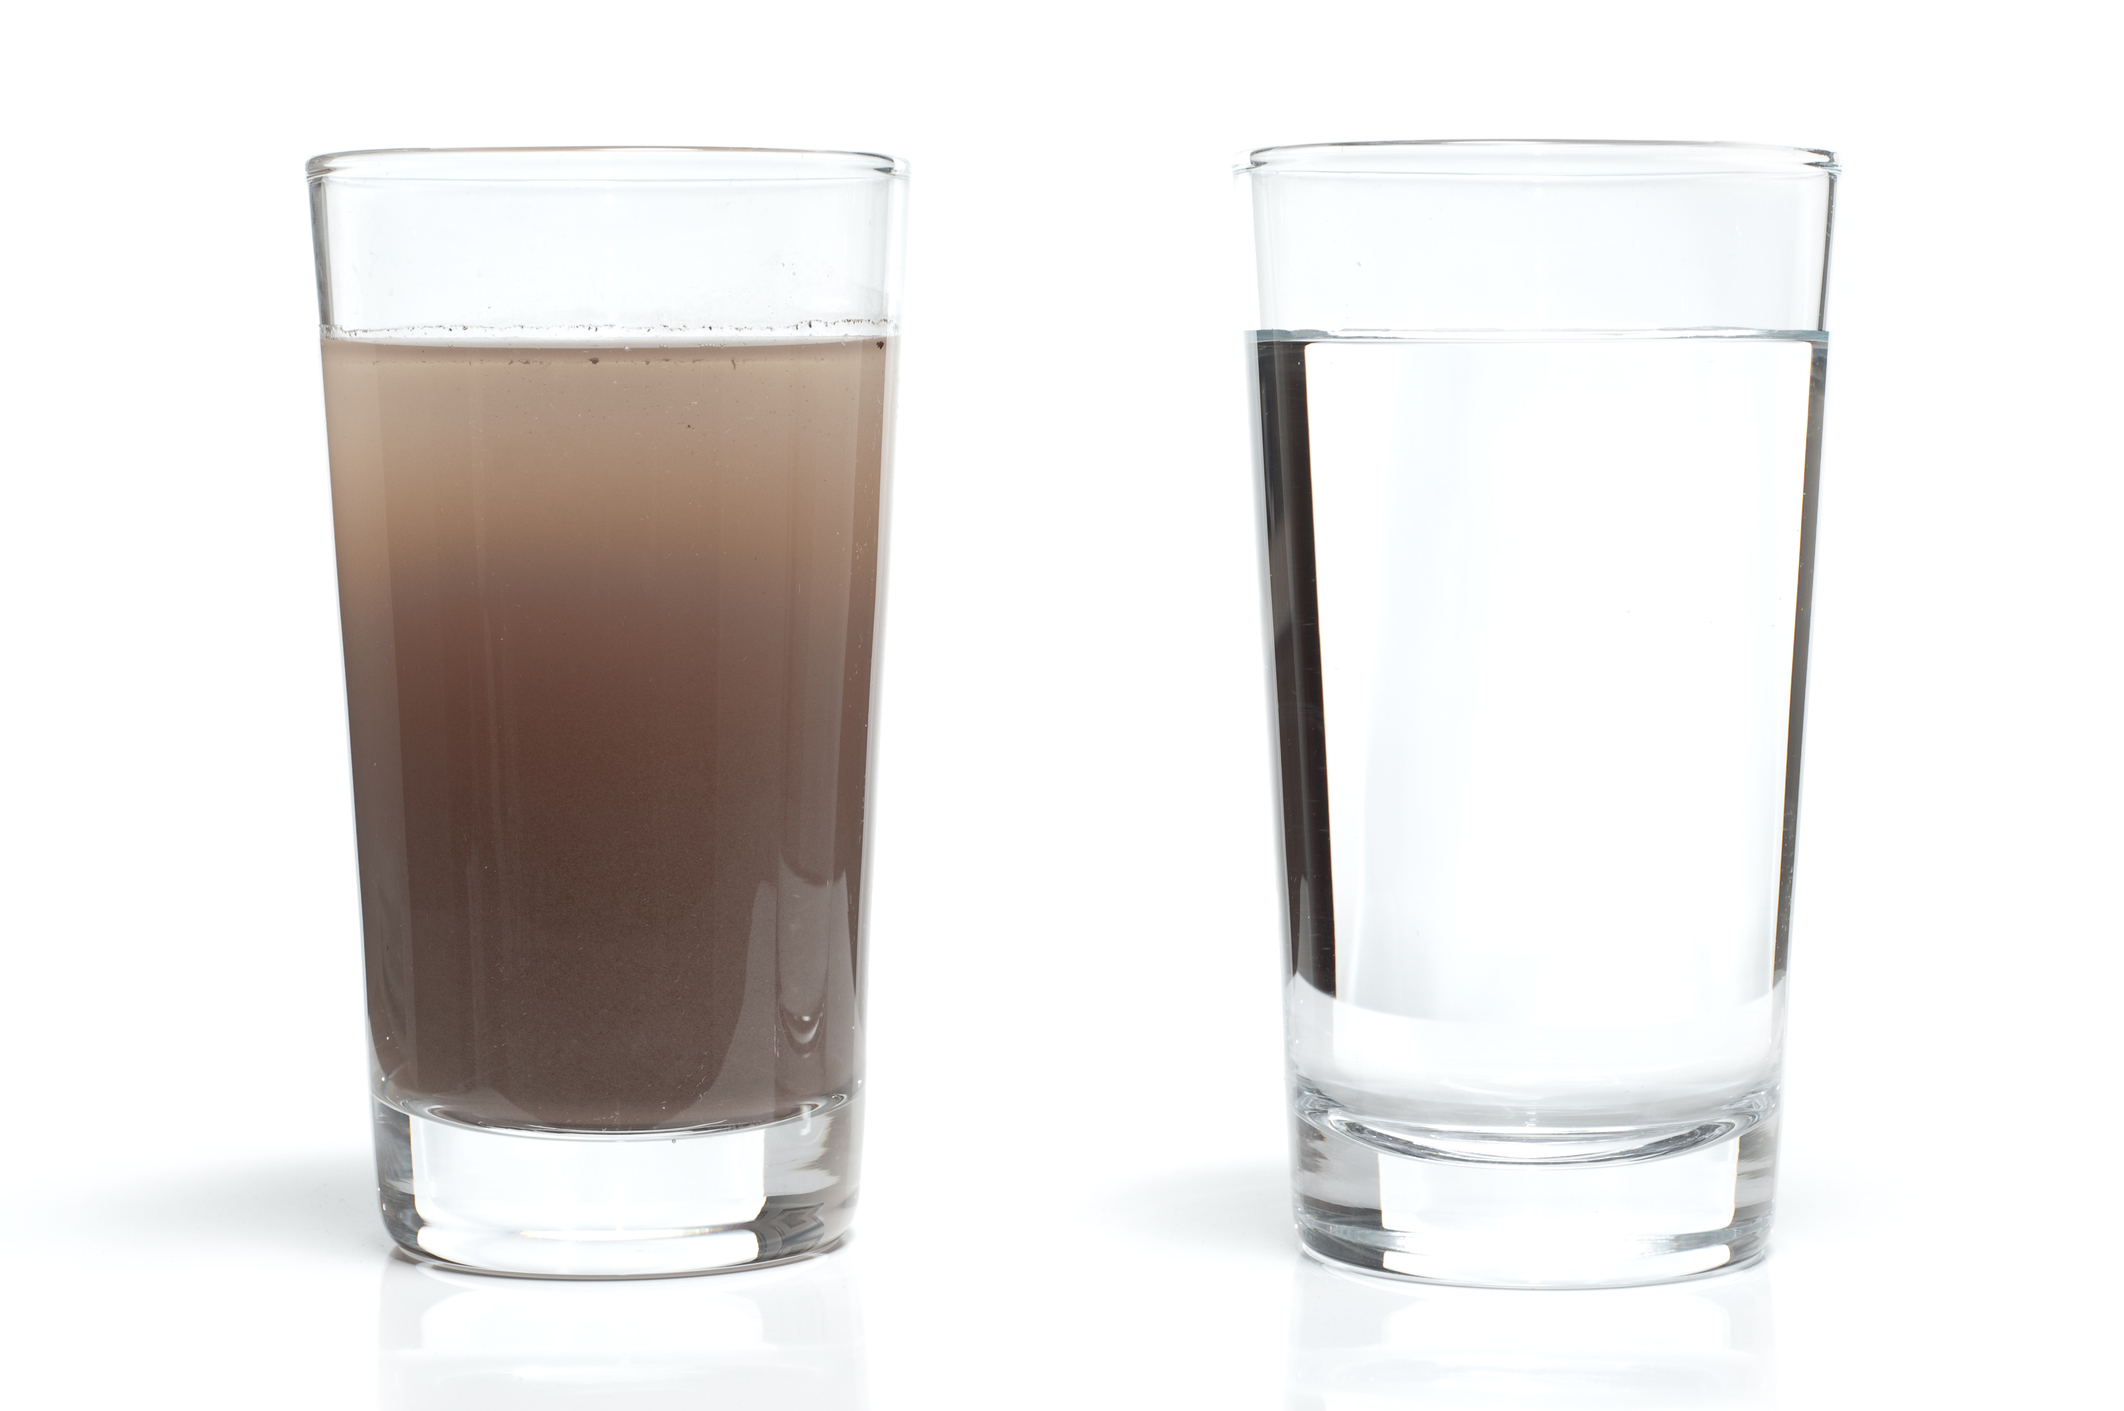 Two water glasses. One with dirty water and the other with fresh, clean water.